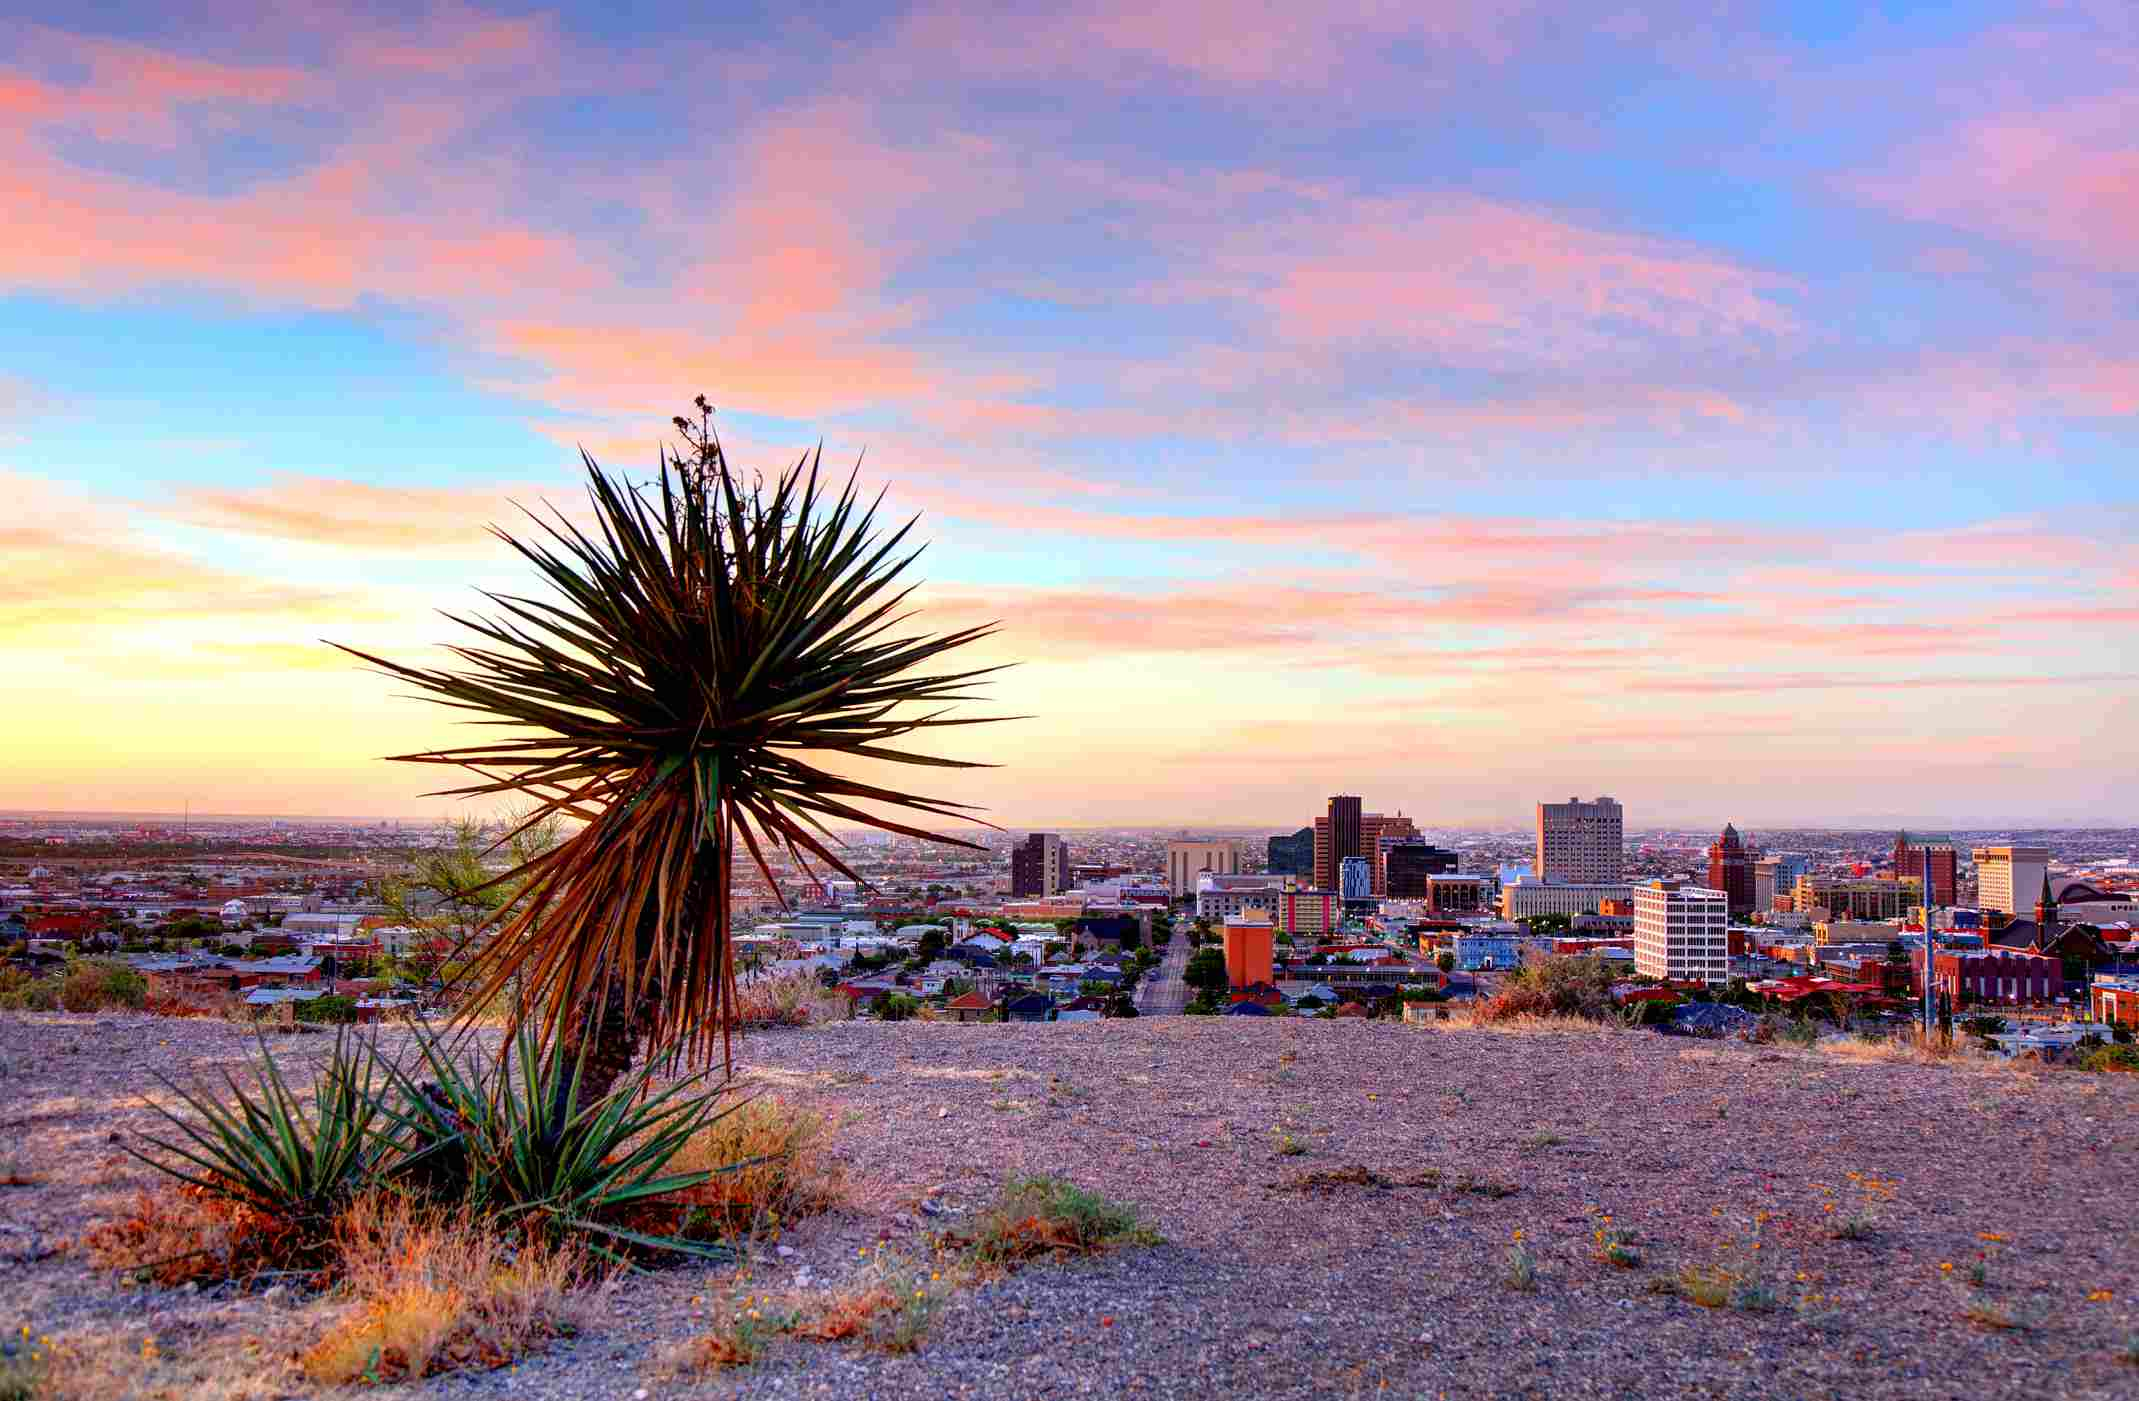 El Paso, Texas as seen from hill overlooking city